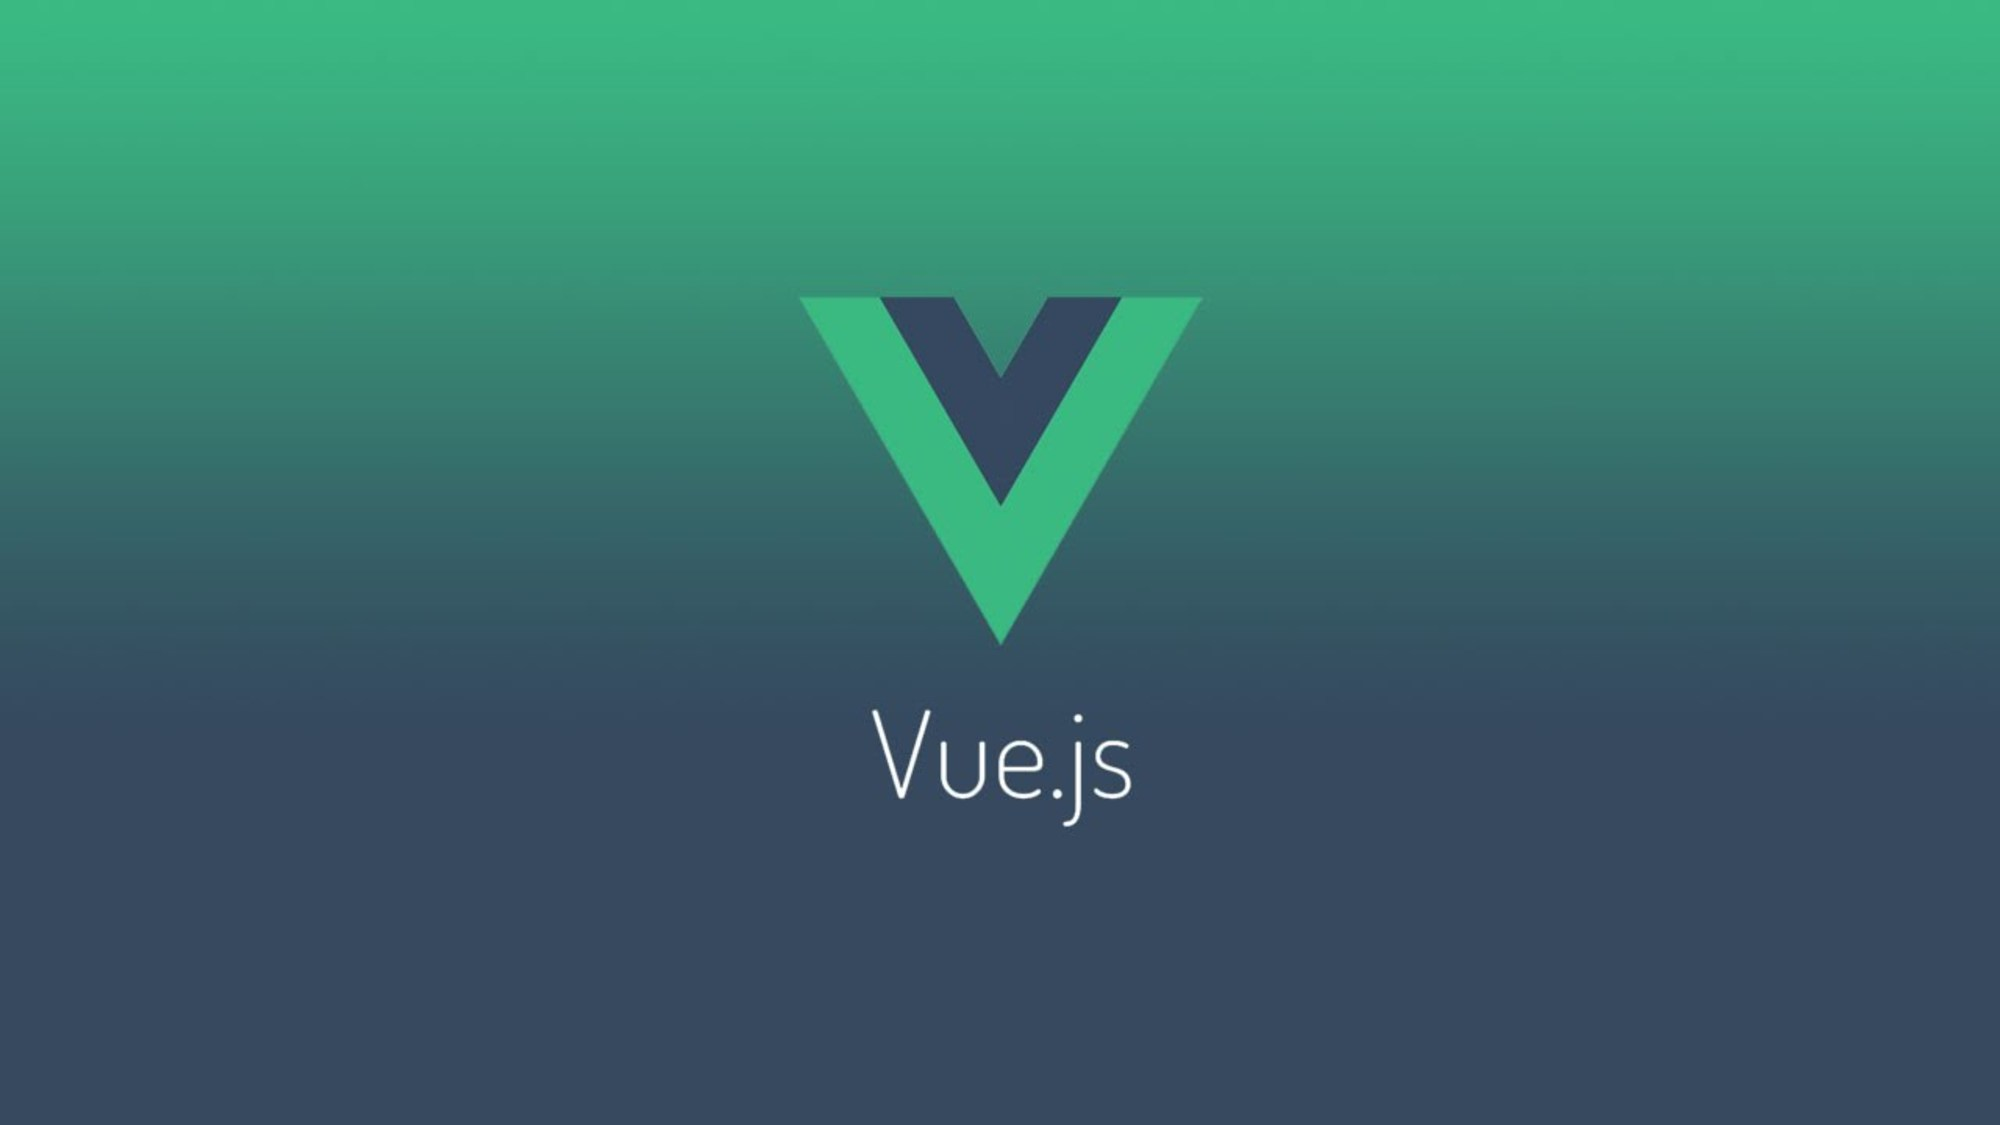 I have tried Vue.js and I love it